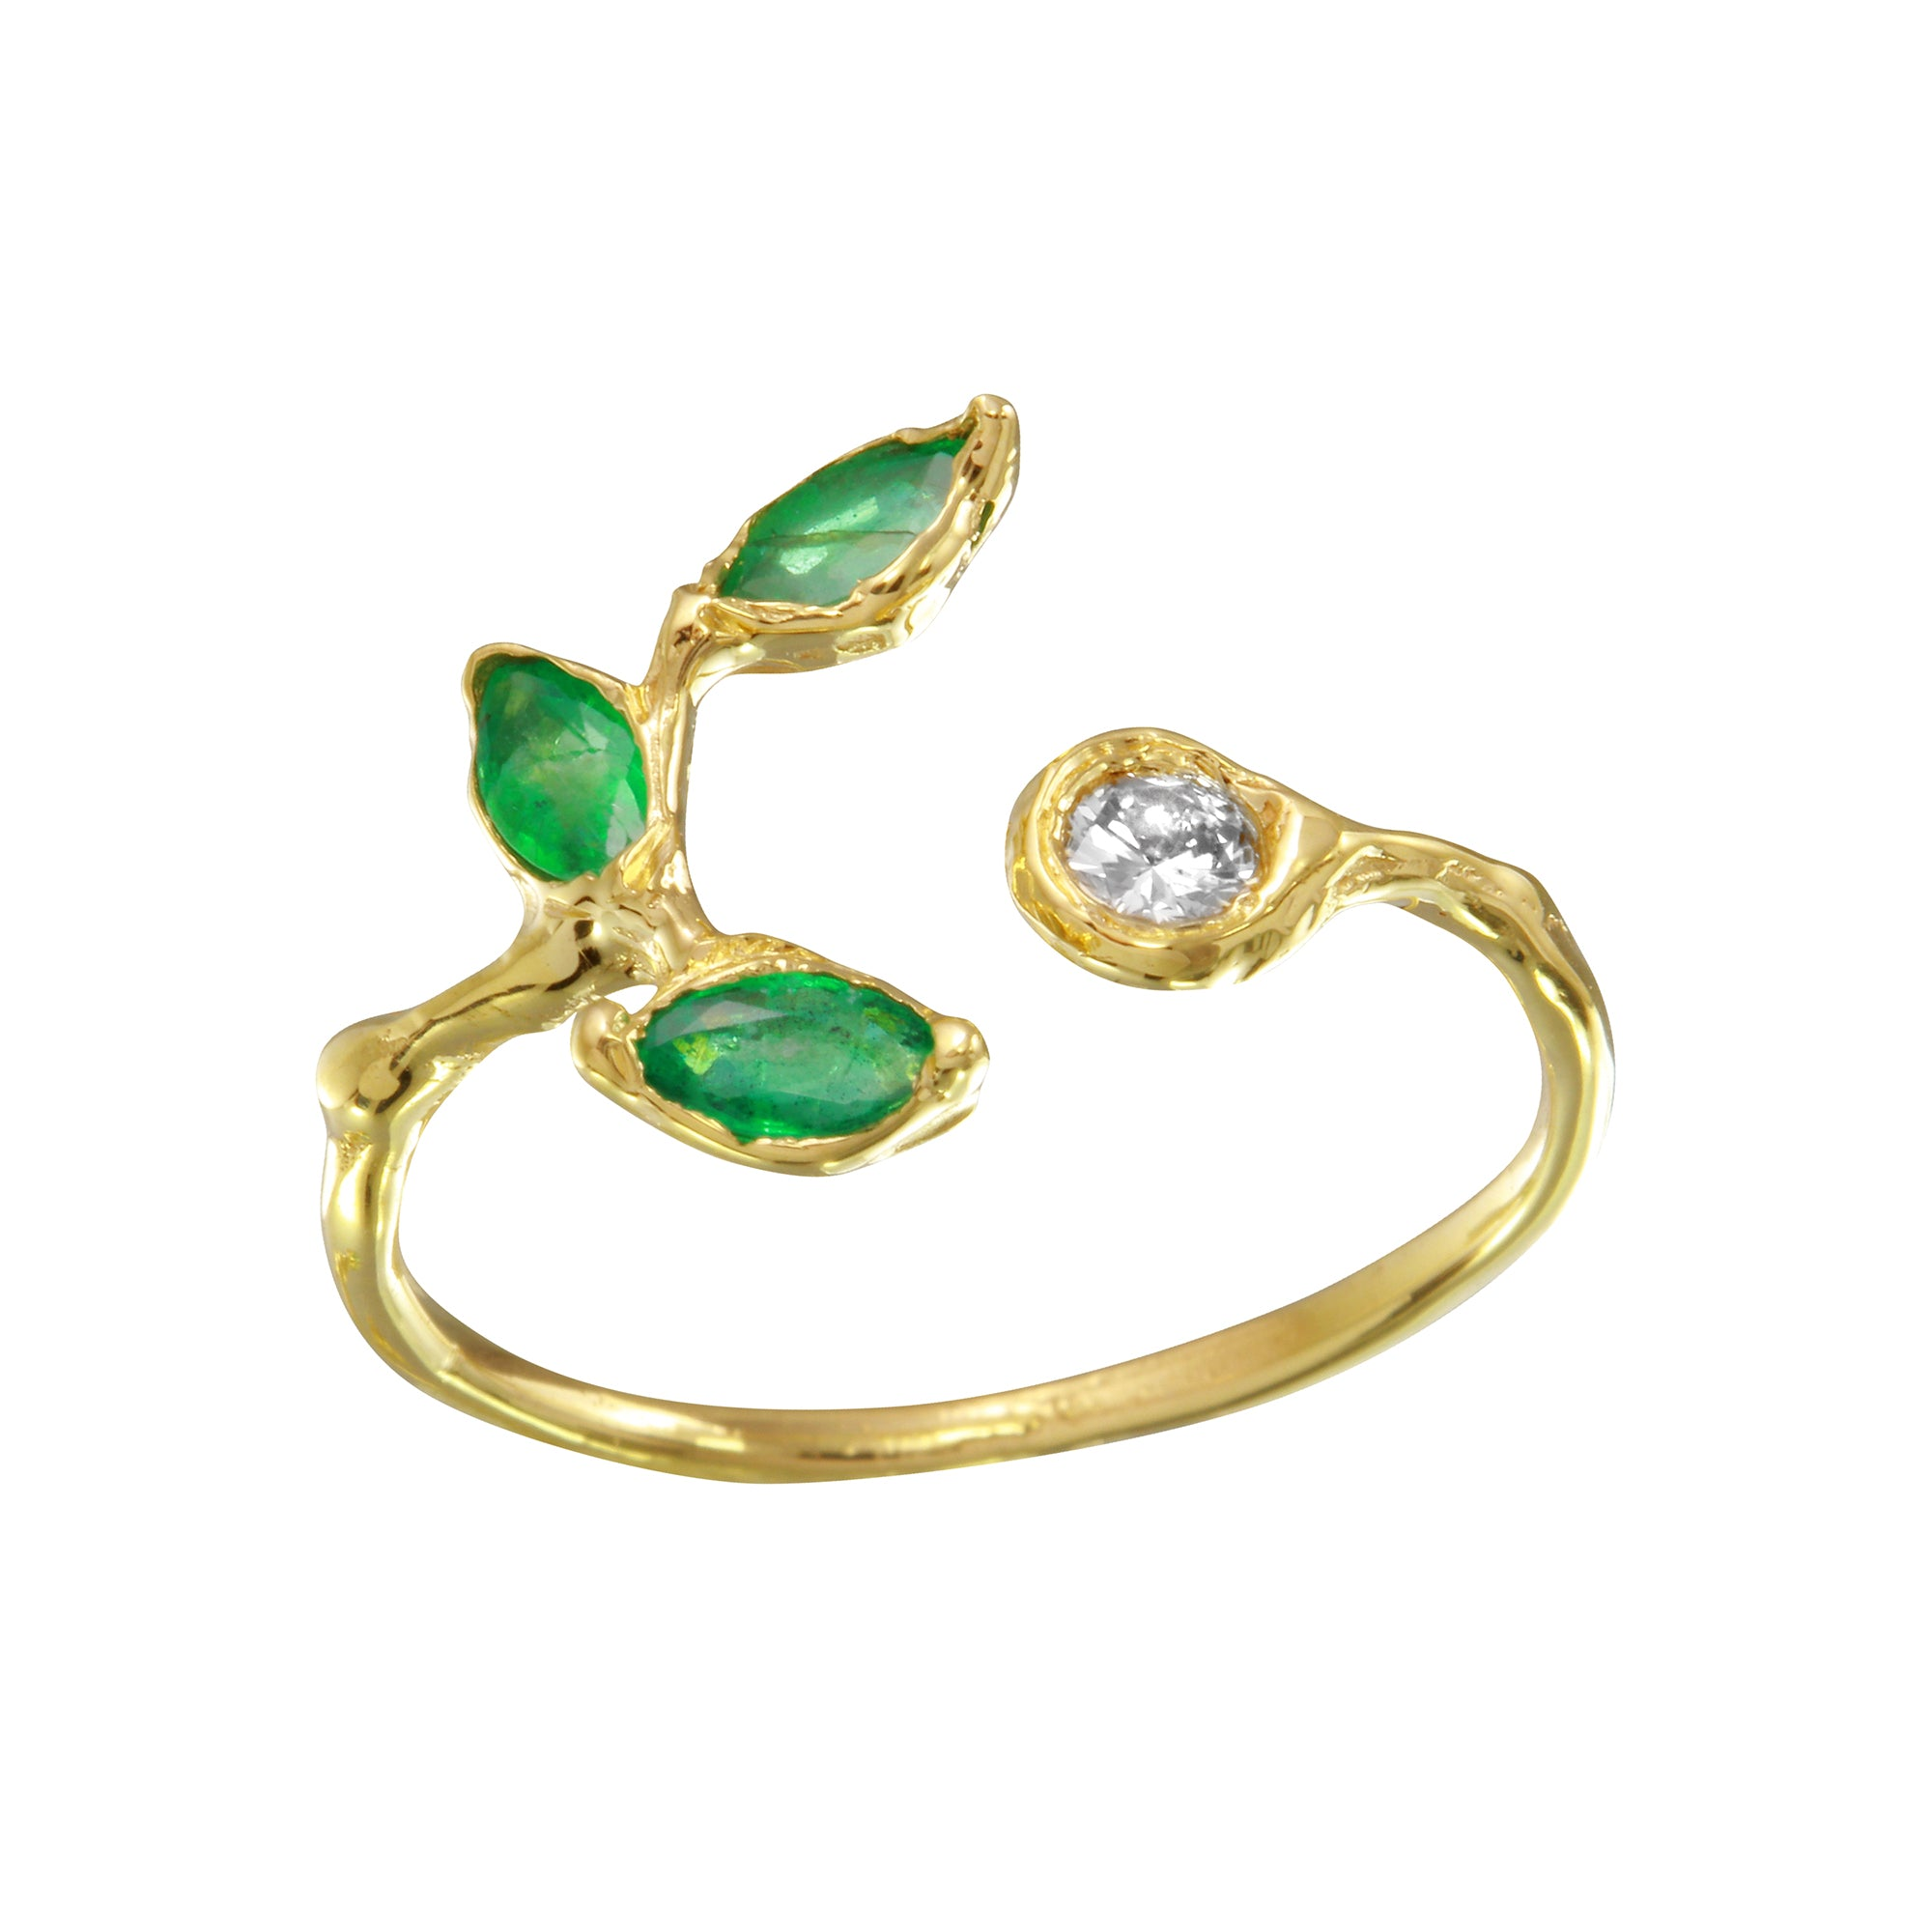 trilliant stones ring graff featuring emerlad cut with rings diamond side square classic collections emeral a emerald